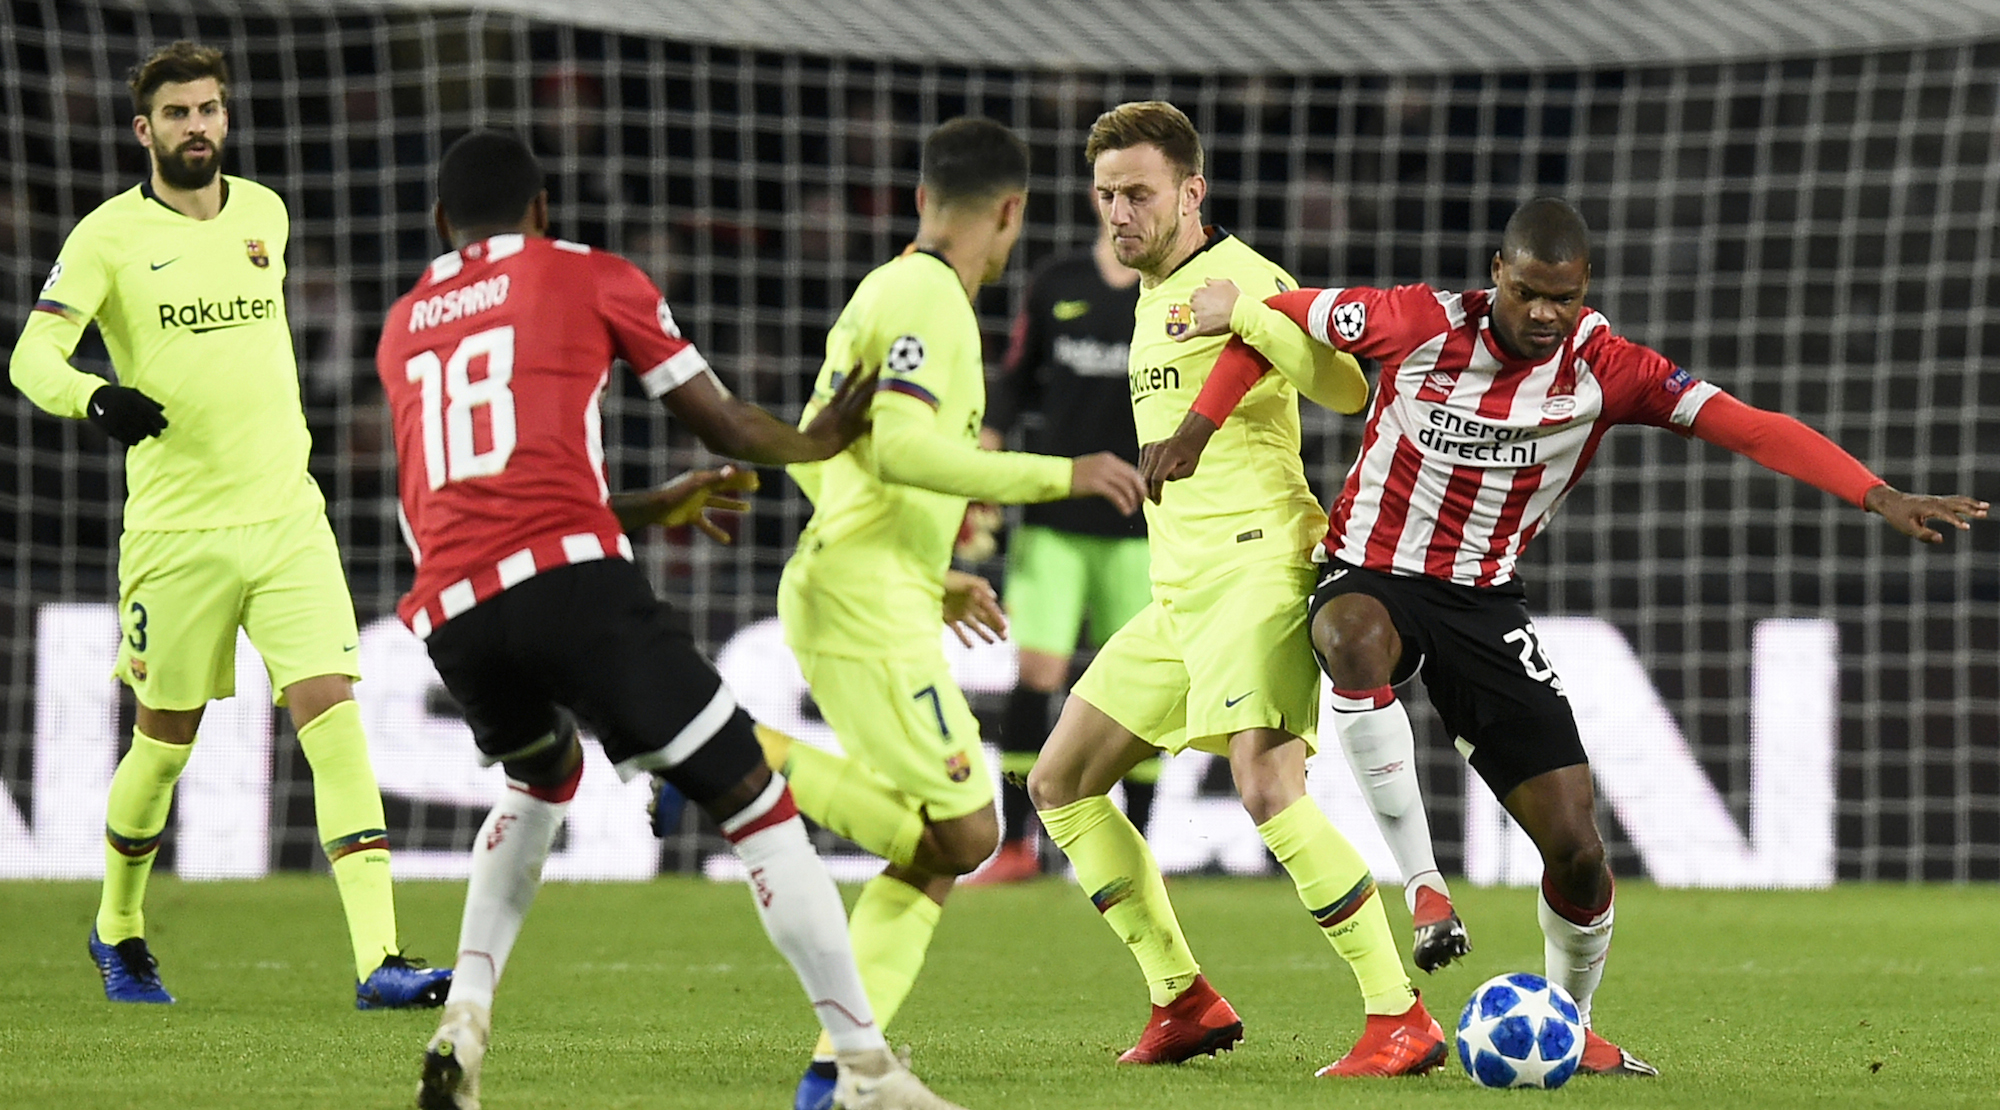 Barcelona's Crotian midfielder Ivan Rakitic (2ndR) vies with Eindhoven's midfielder Ramon Pascal Lundqvist (R) during the UEFA Champions League football match between PSV Eindhoven and FC Barcelona at Philips stadium in Eindhoven on November 28, 2018. (Photo by JOHN THYS / AFP) (Photo credit should read JOHN THYS/AFP/Getty Images)